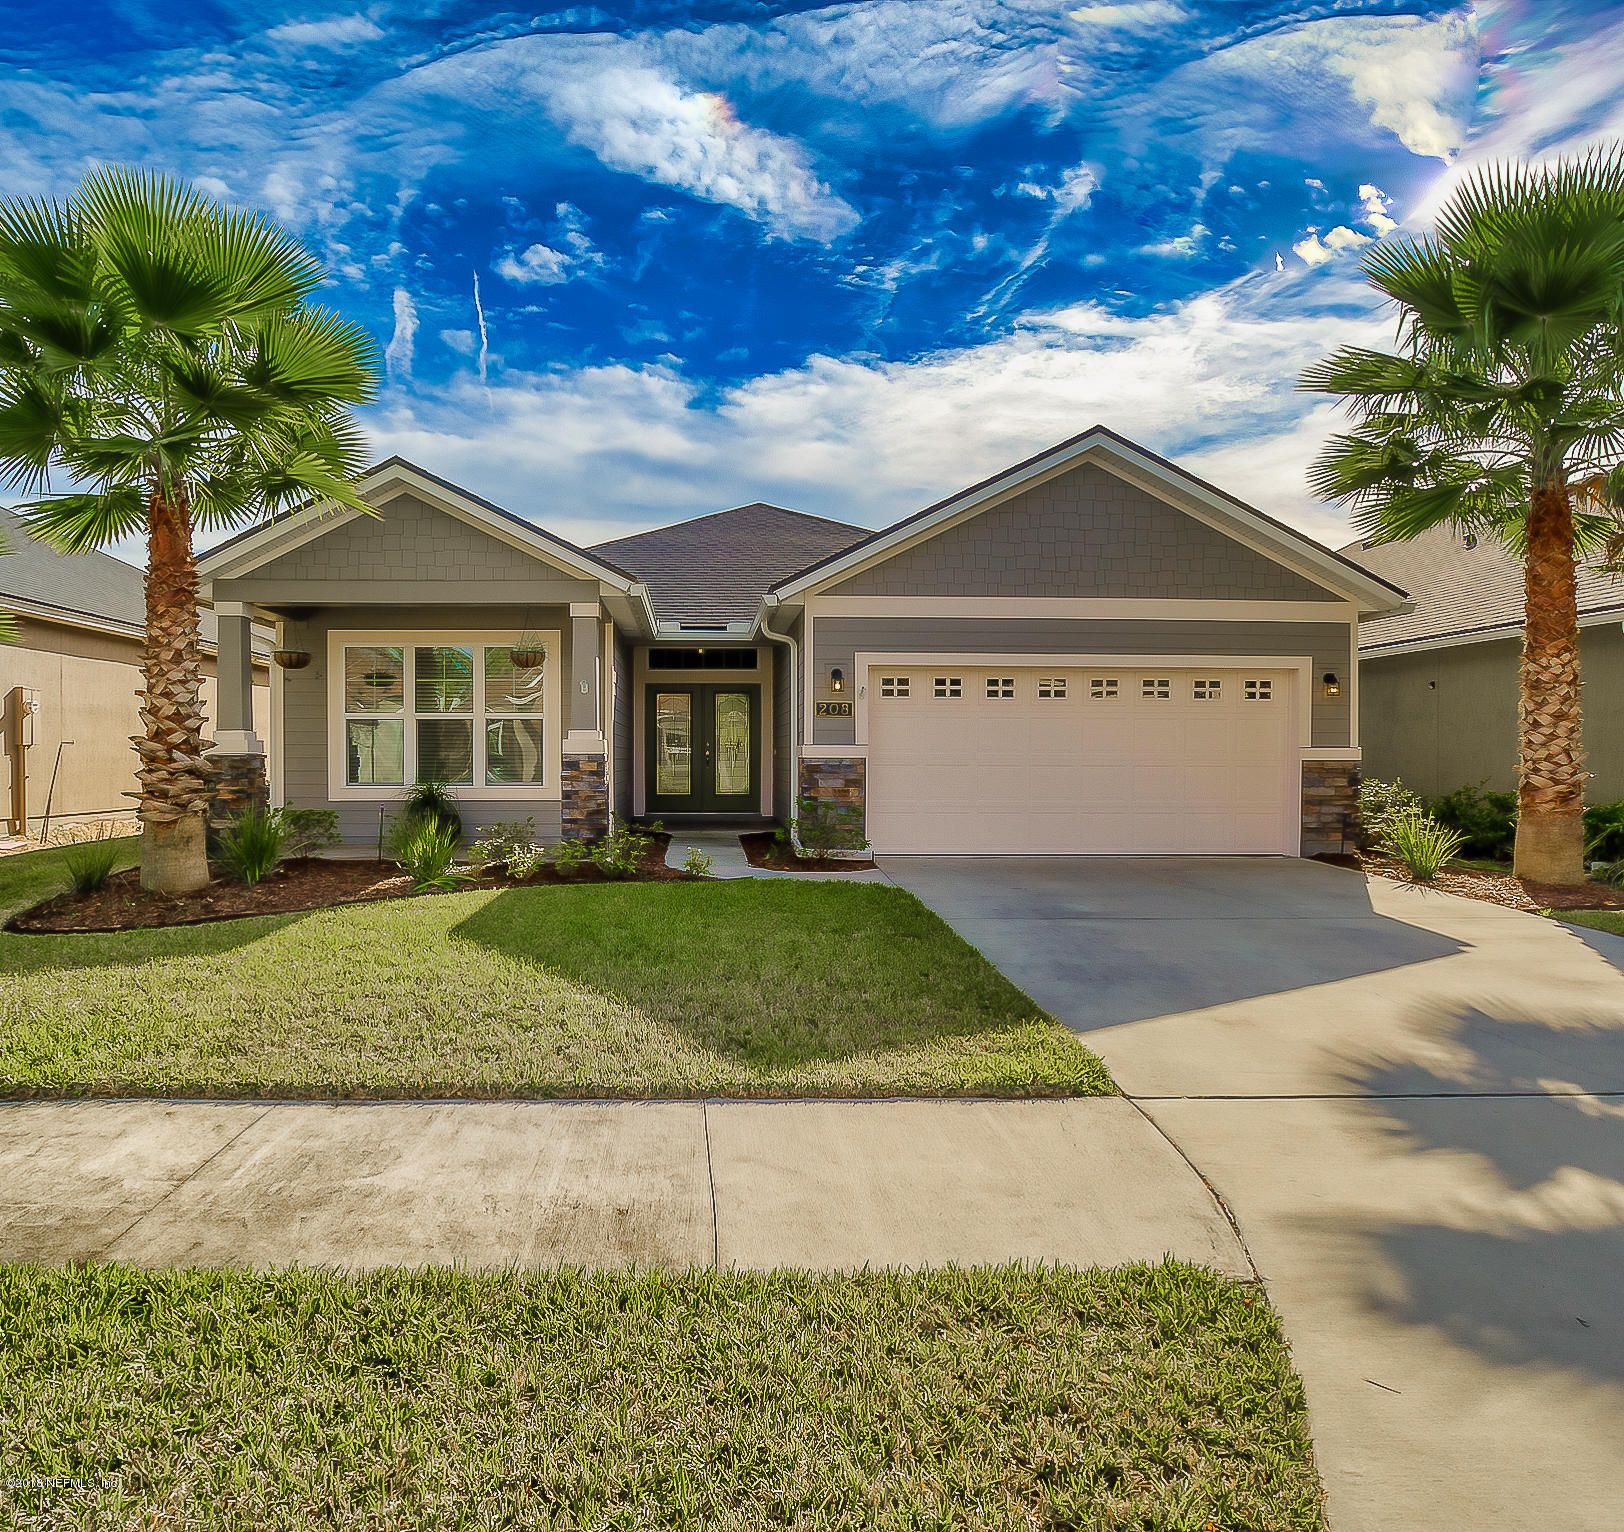 Photo of 208 QUEENSLAND, PONTE VEDRA, FL 32081